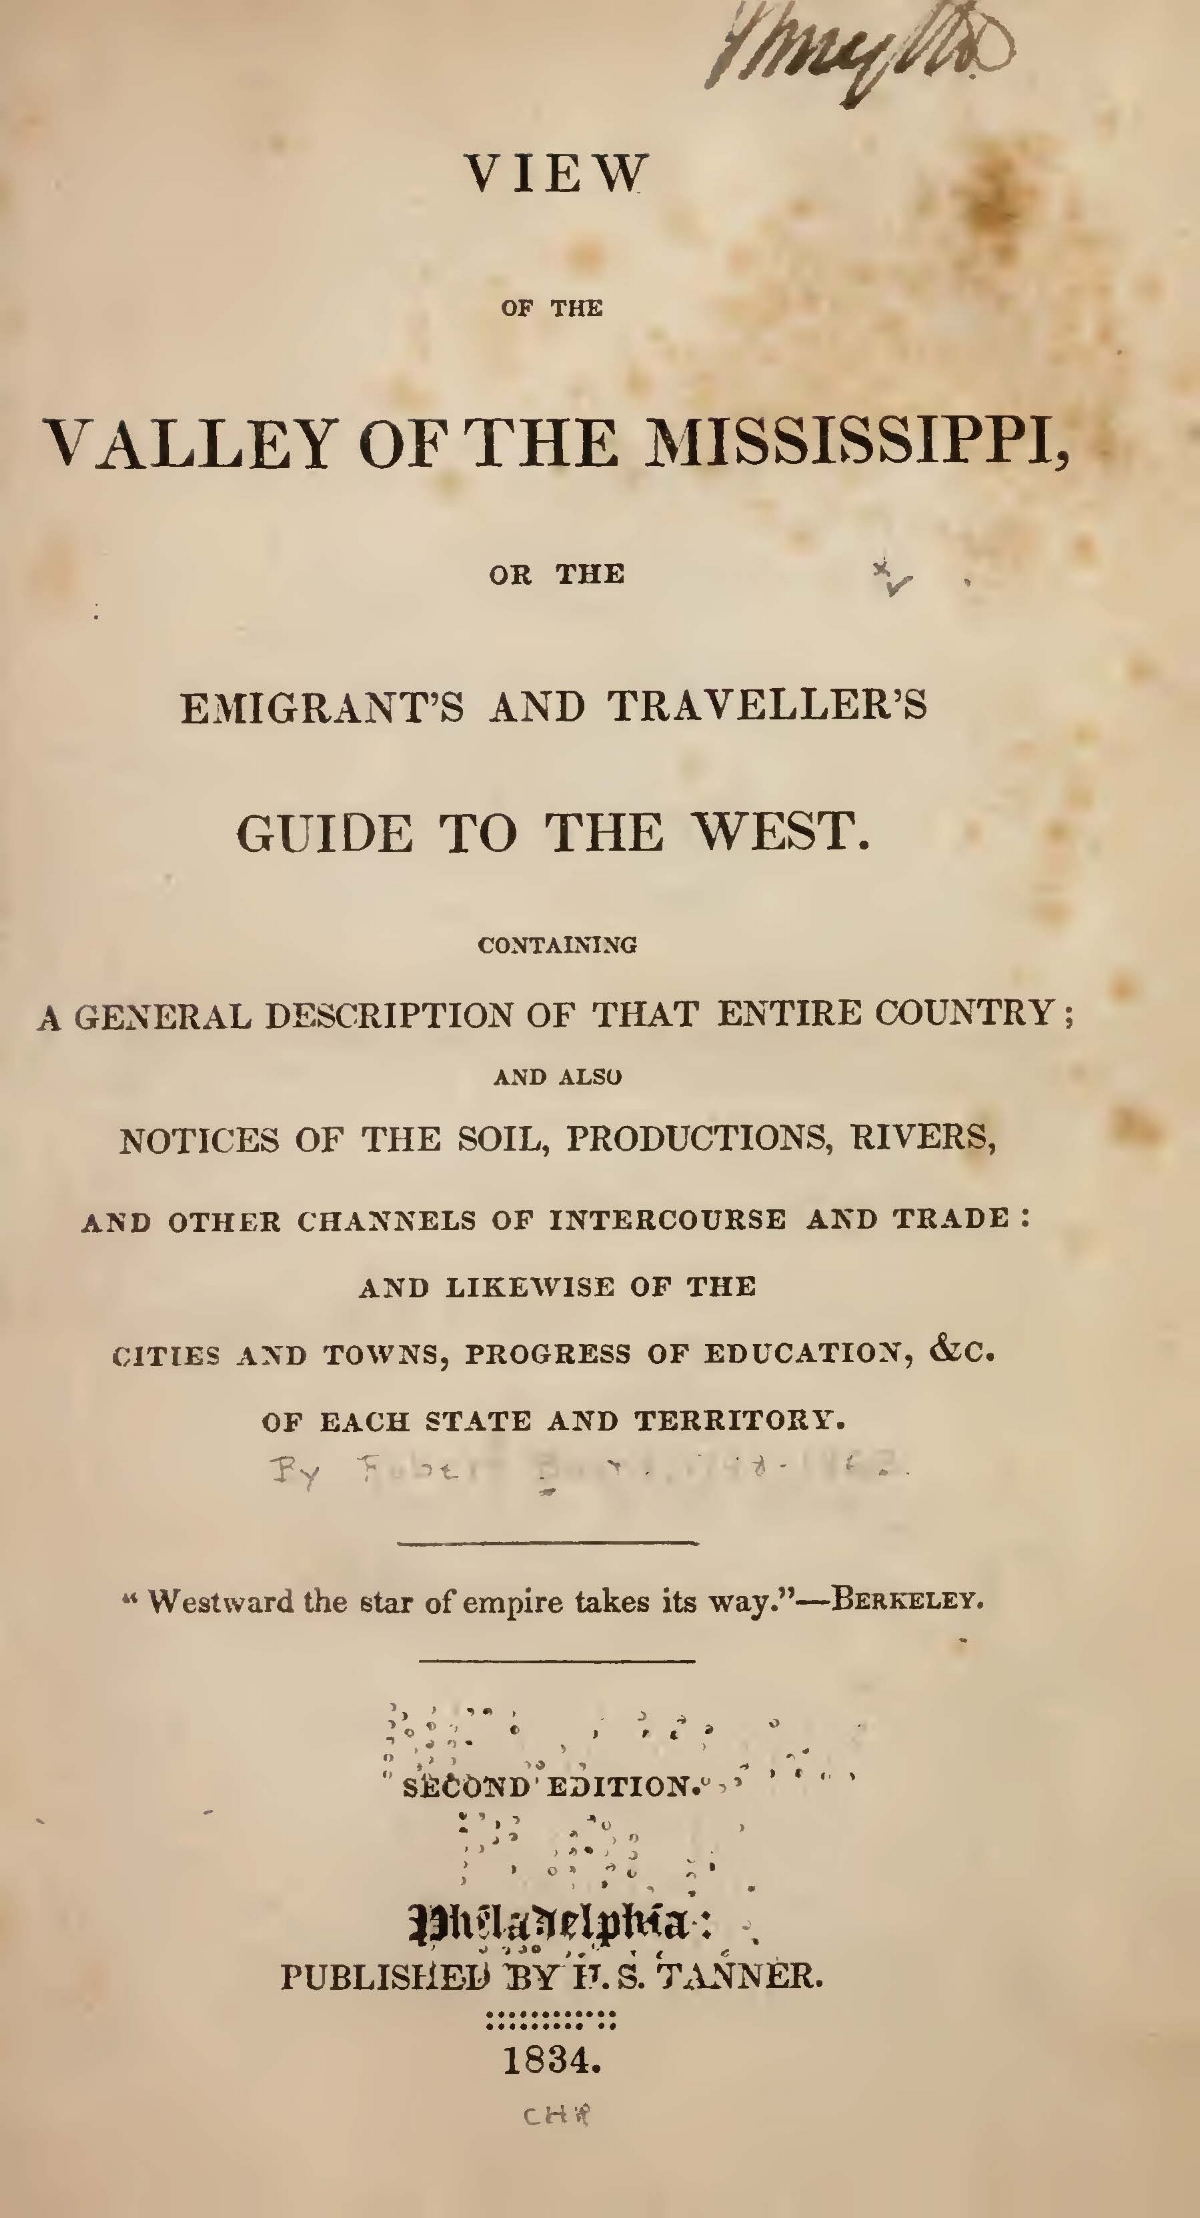 Baird, Robert, View of the Valley of the Mississippi Title Page.jpg